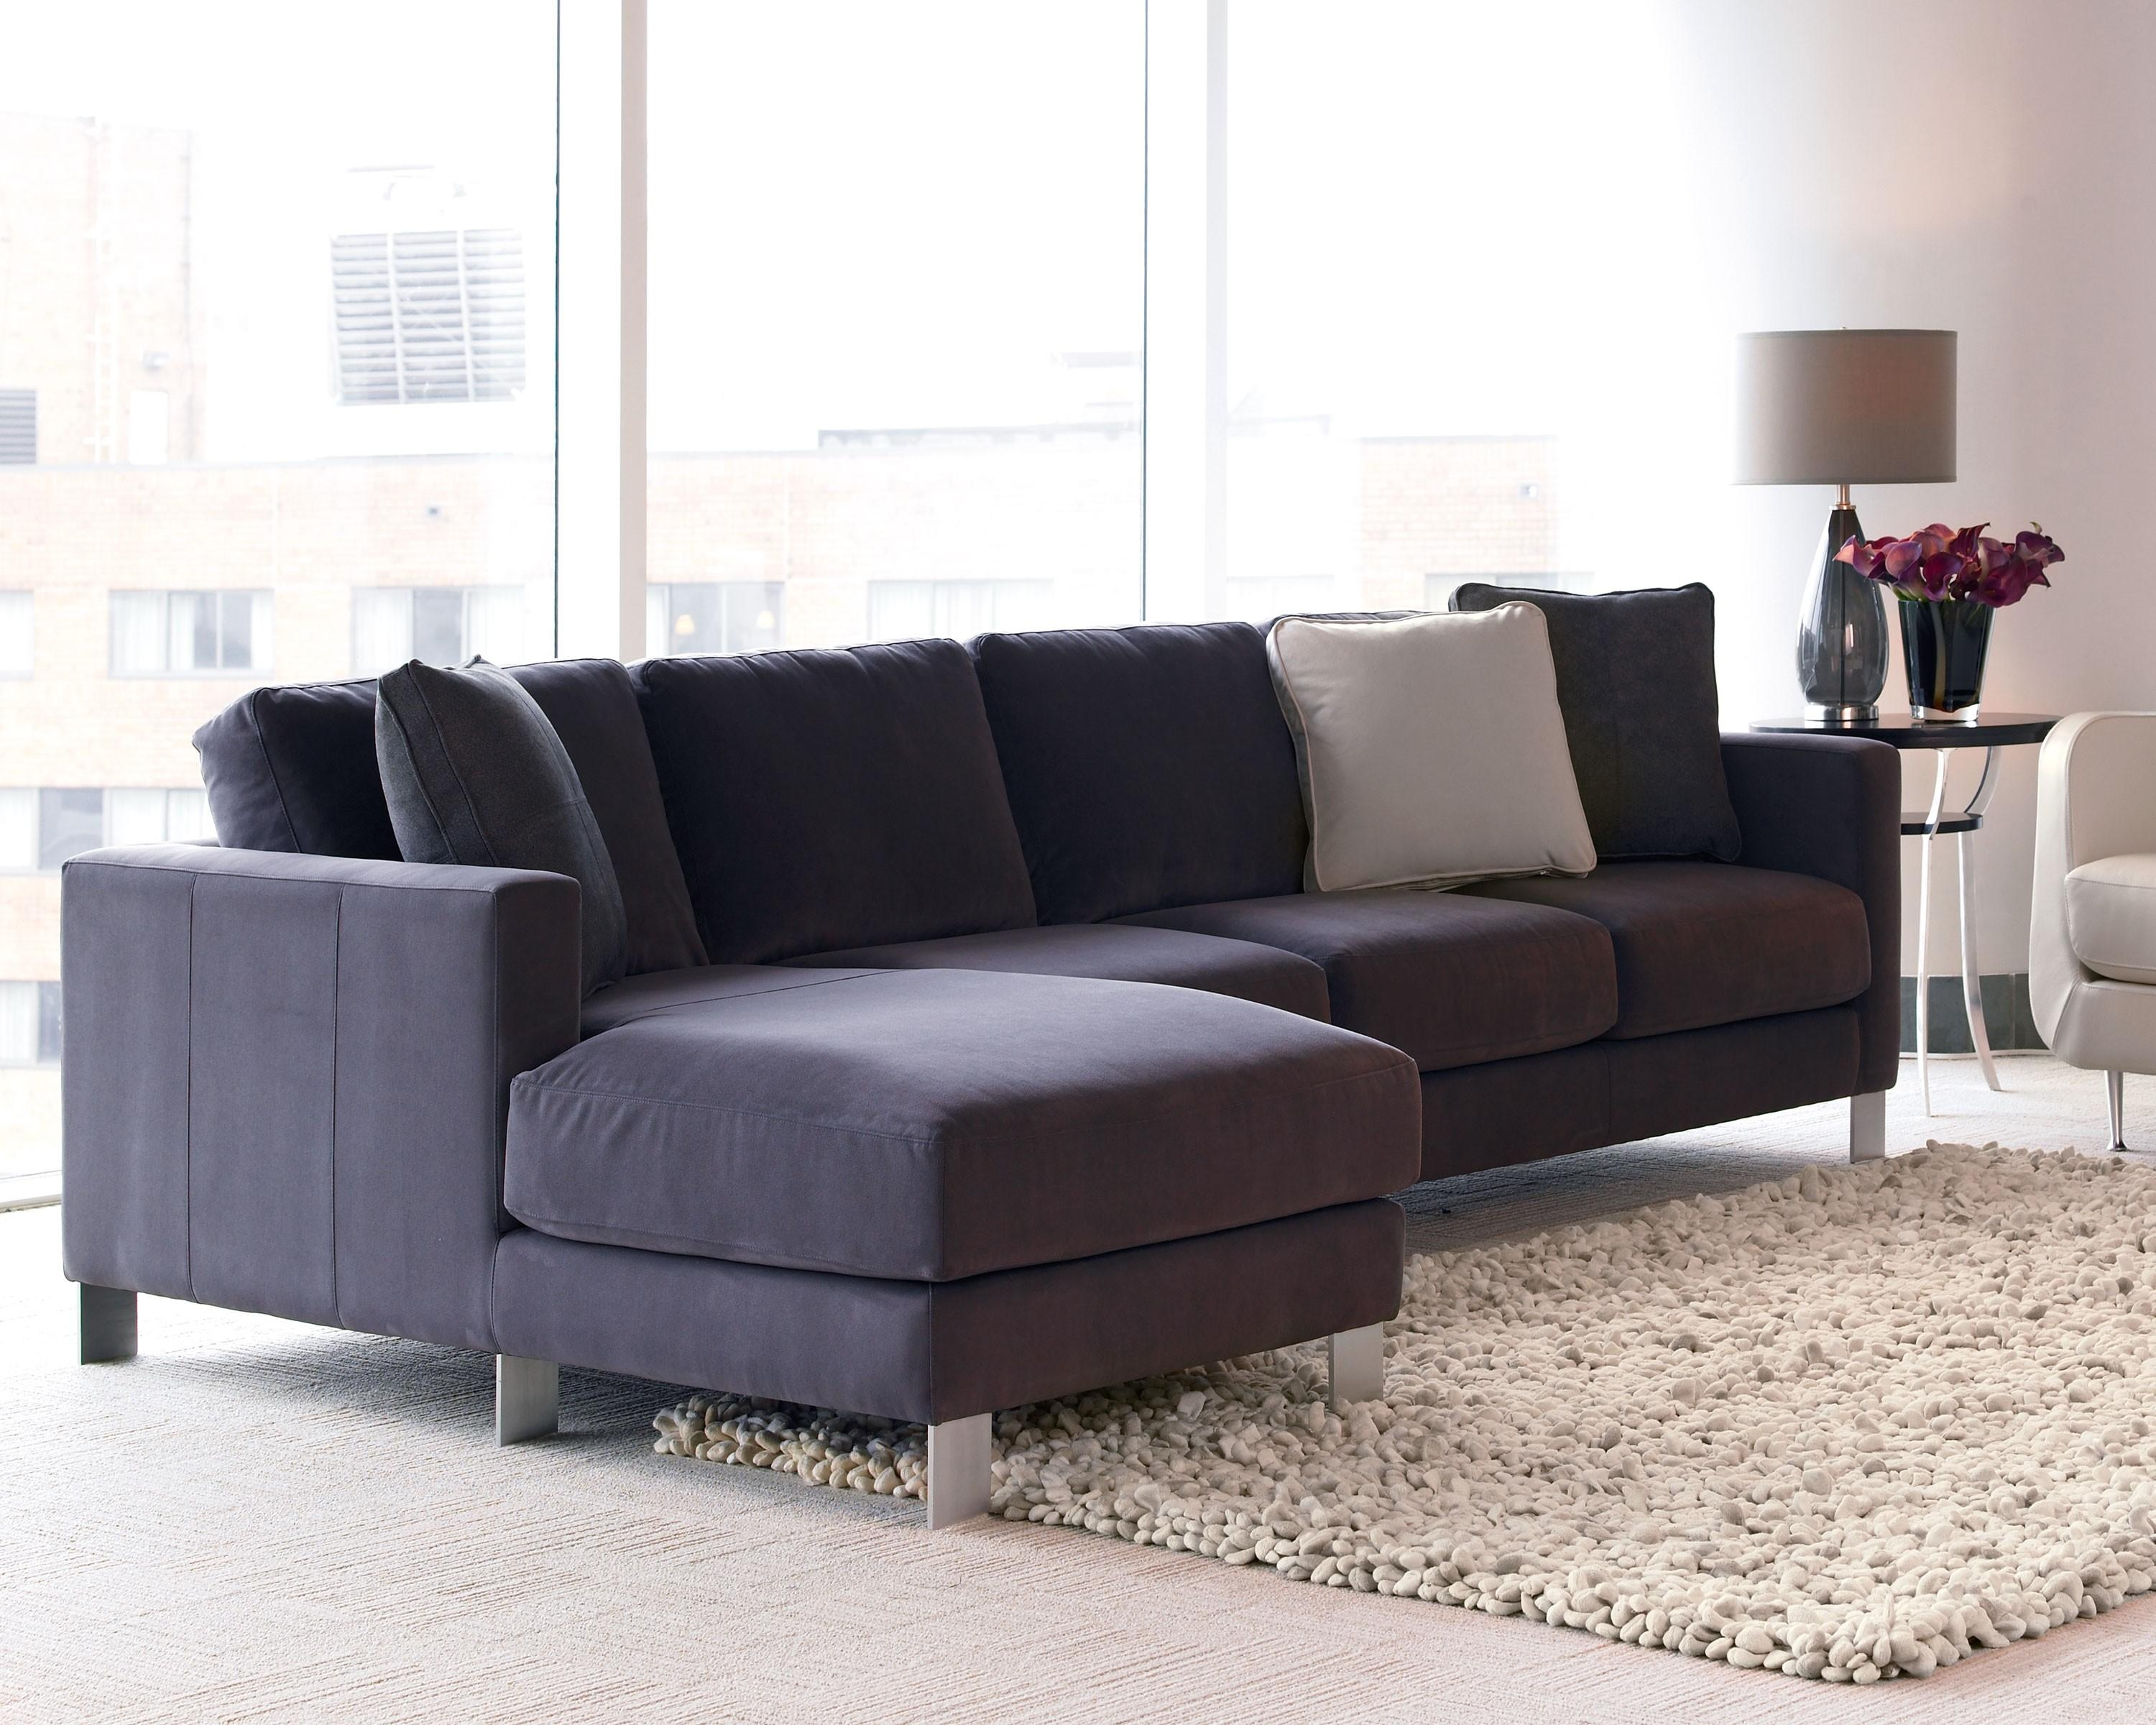 American Leather Convertible Sofa | Centerfieldbar Regarding American Sofa Beds (View 10 of 22)